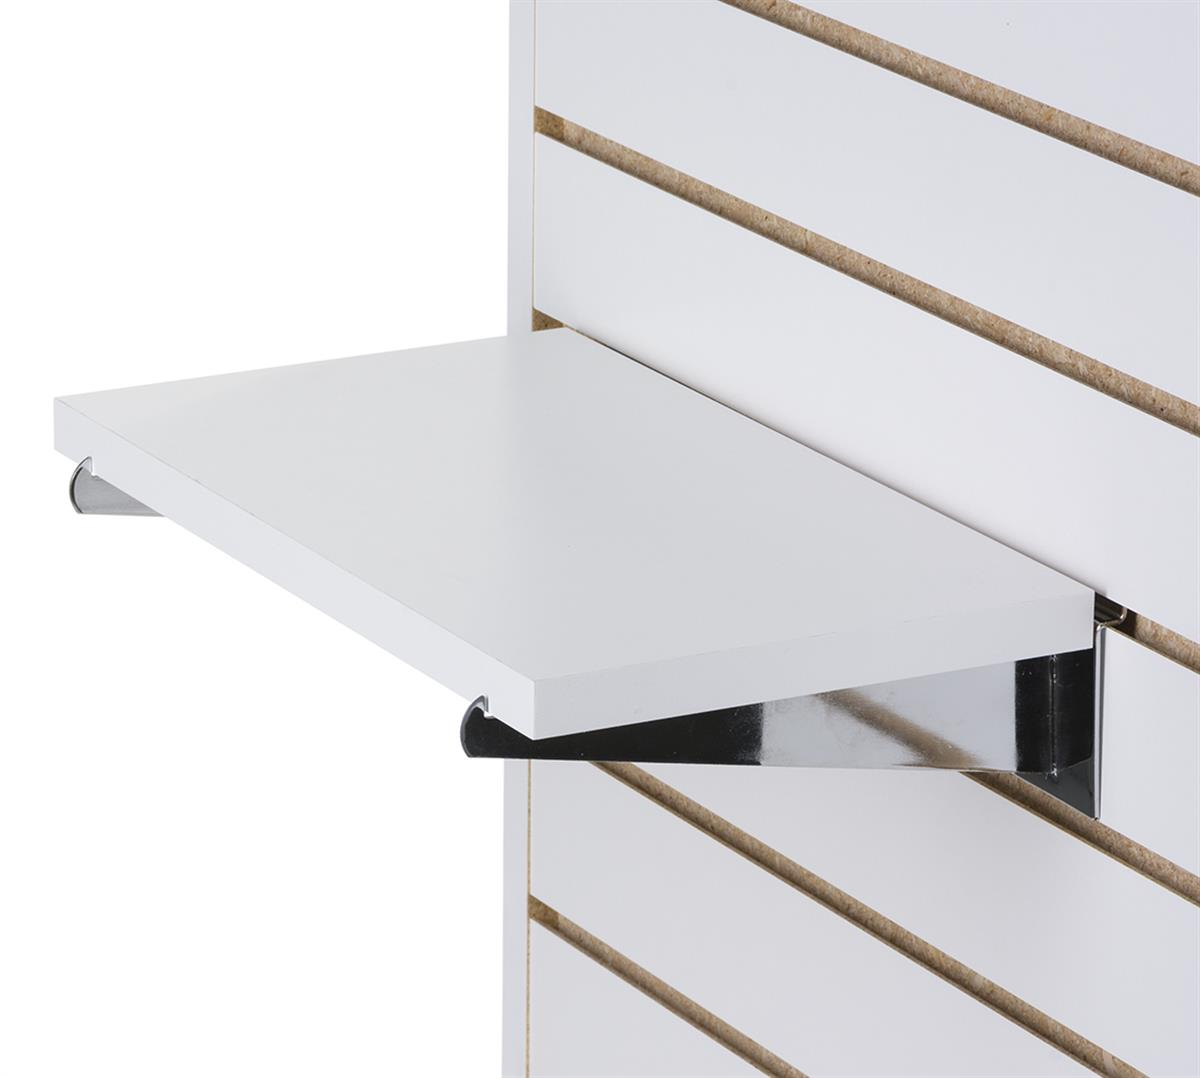 8 X 14 Slatwall Shelves With Brackets Set Of 4 White